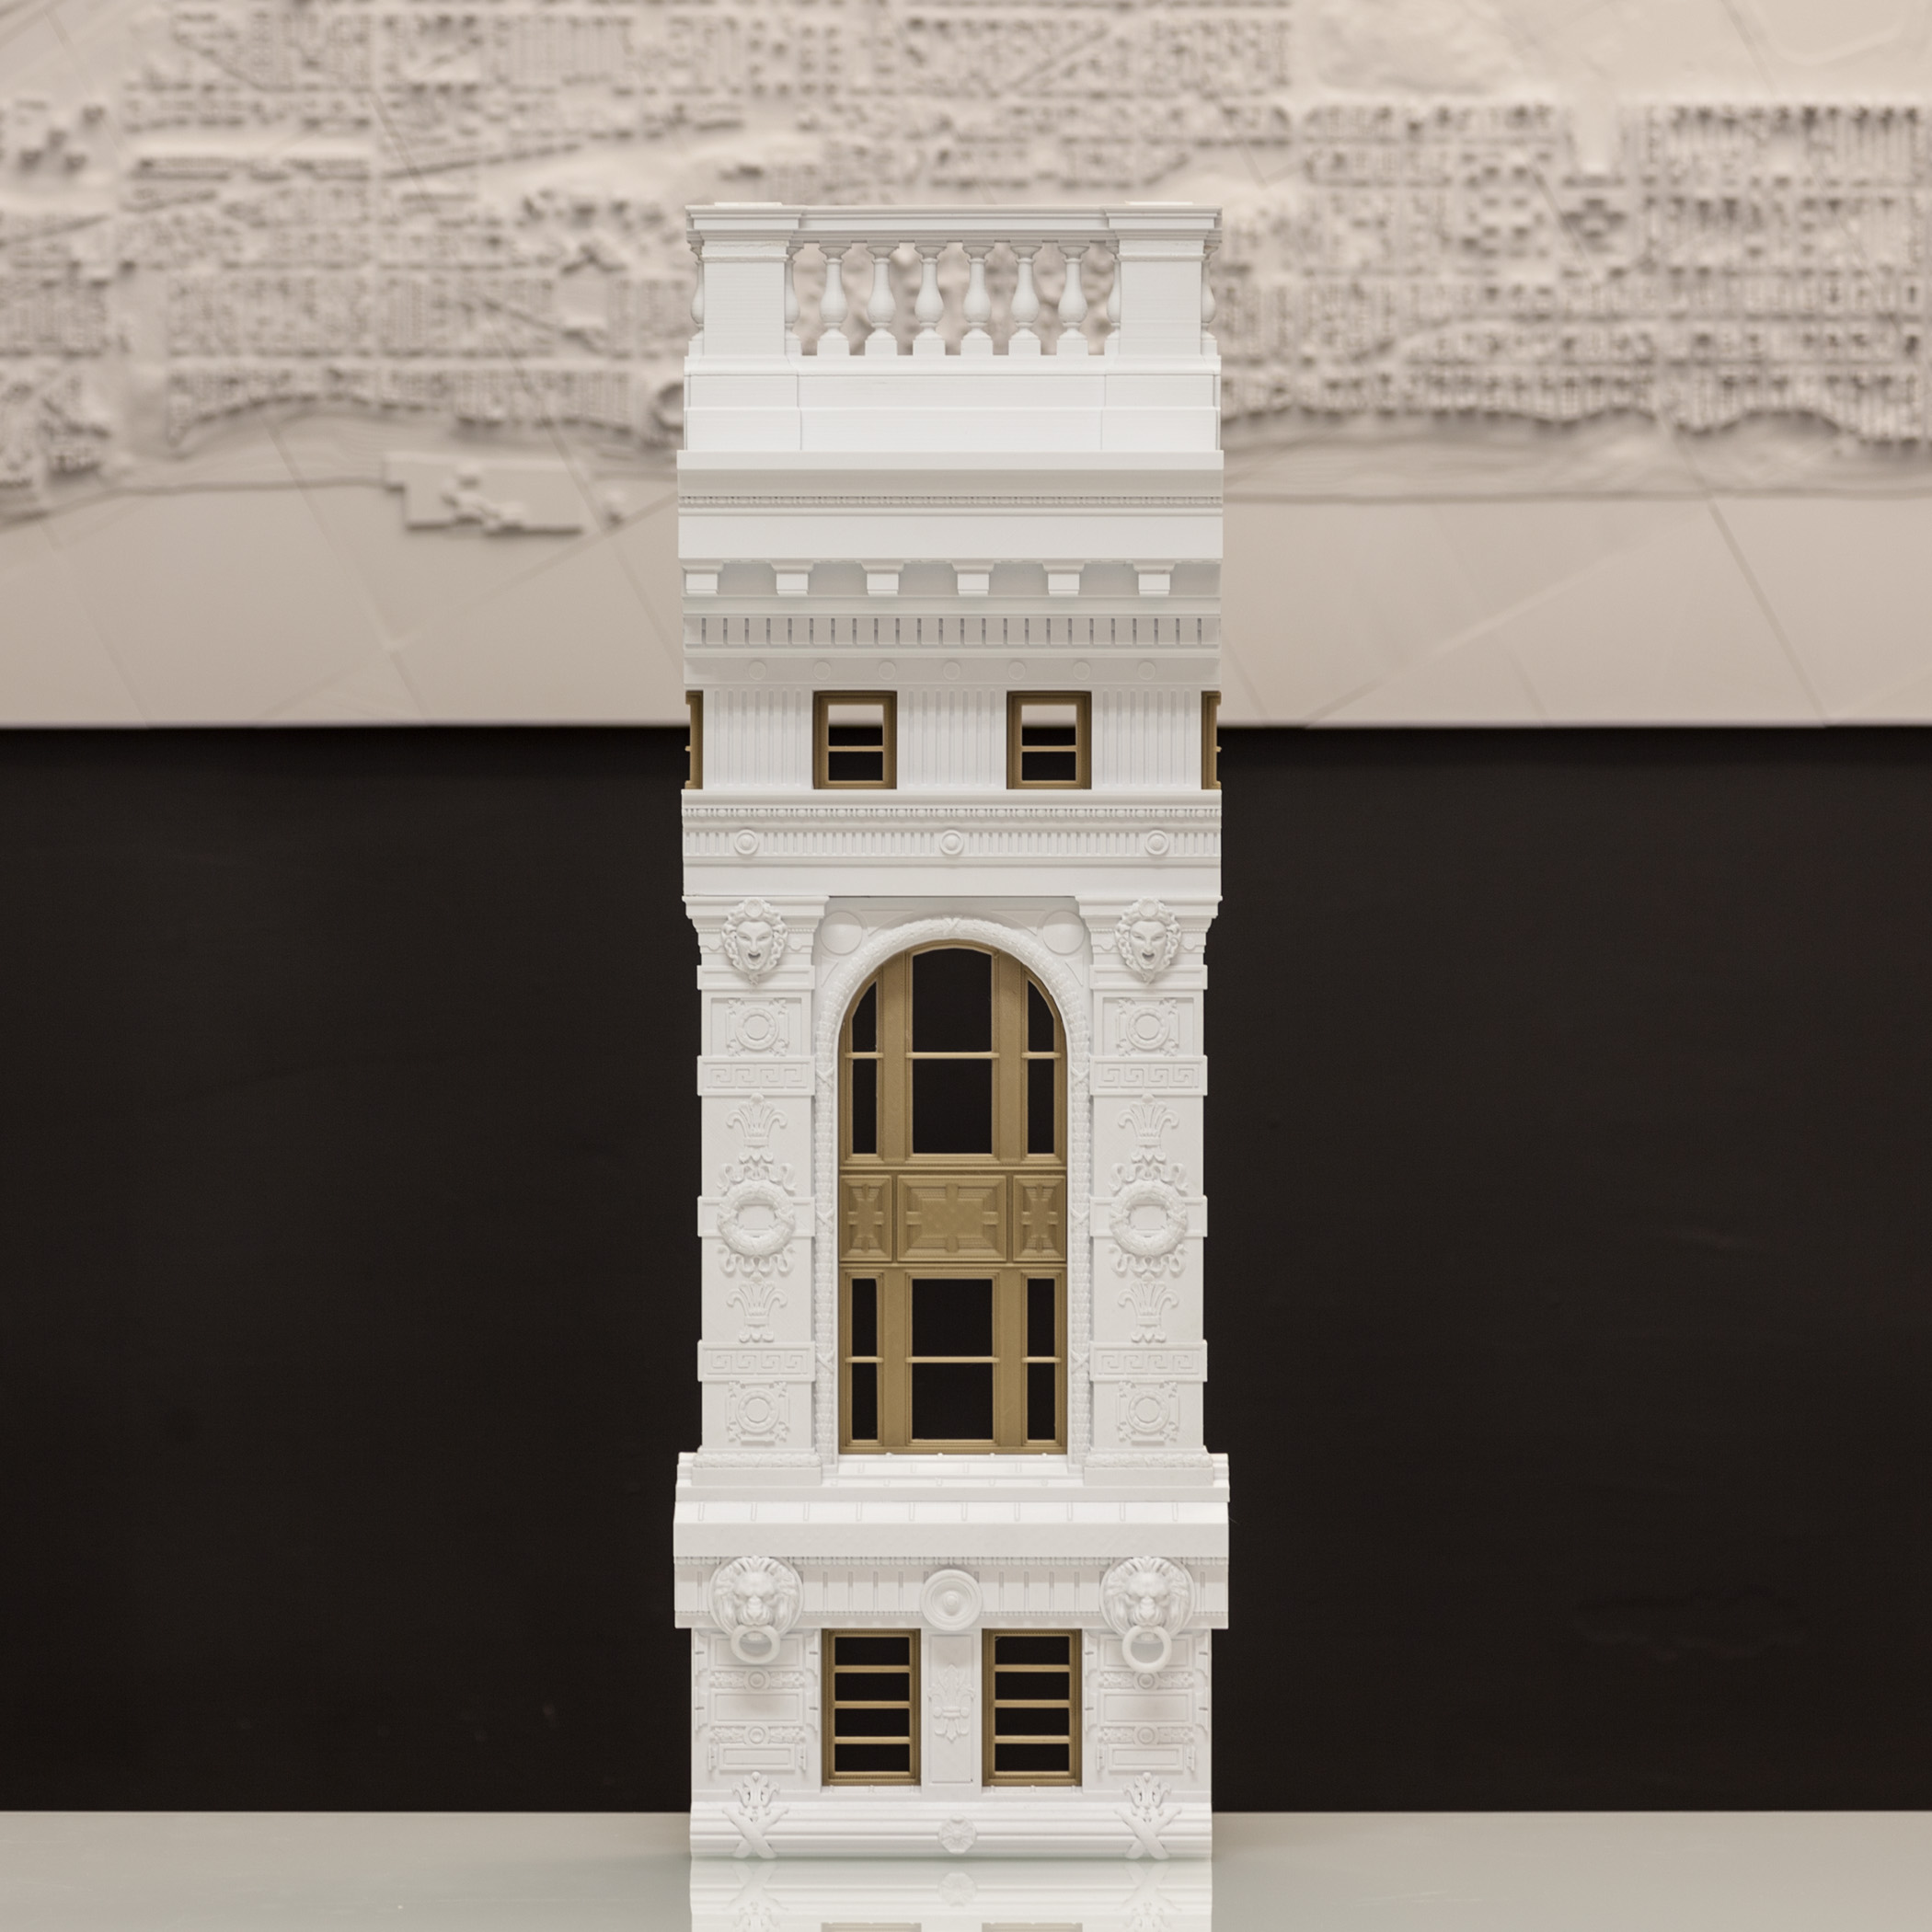 A section of the top four stories of the Flatiron Building's facade, 3D-printed from manually processed photogrammetry scan data.